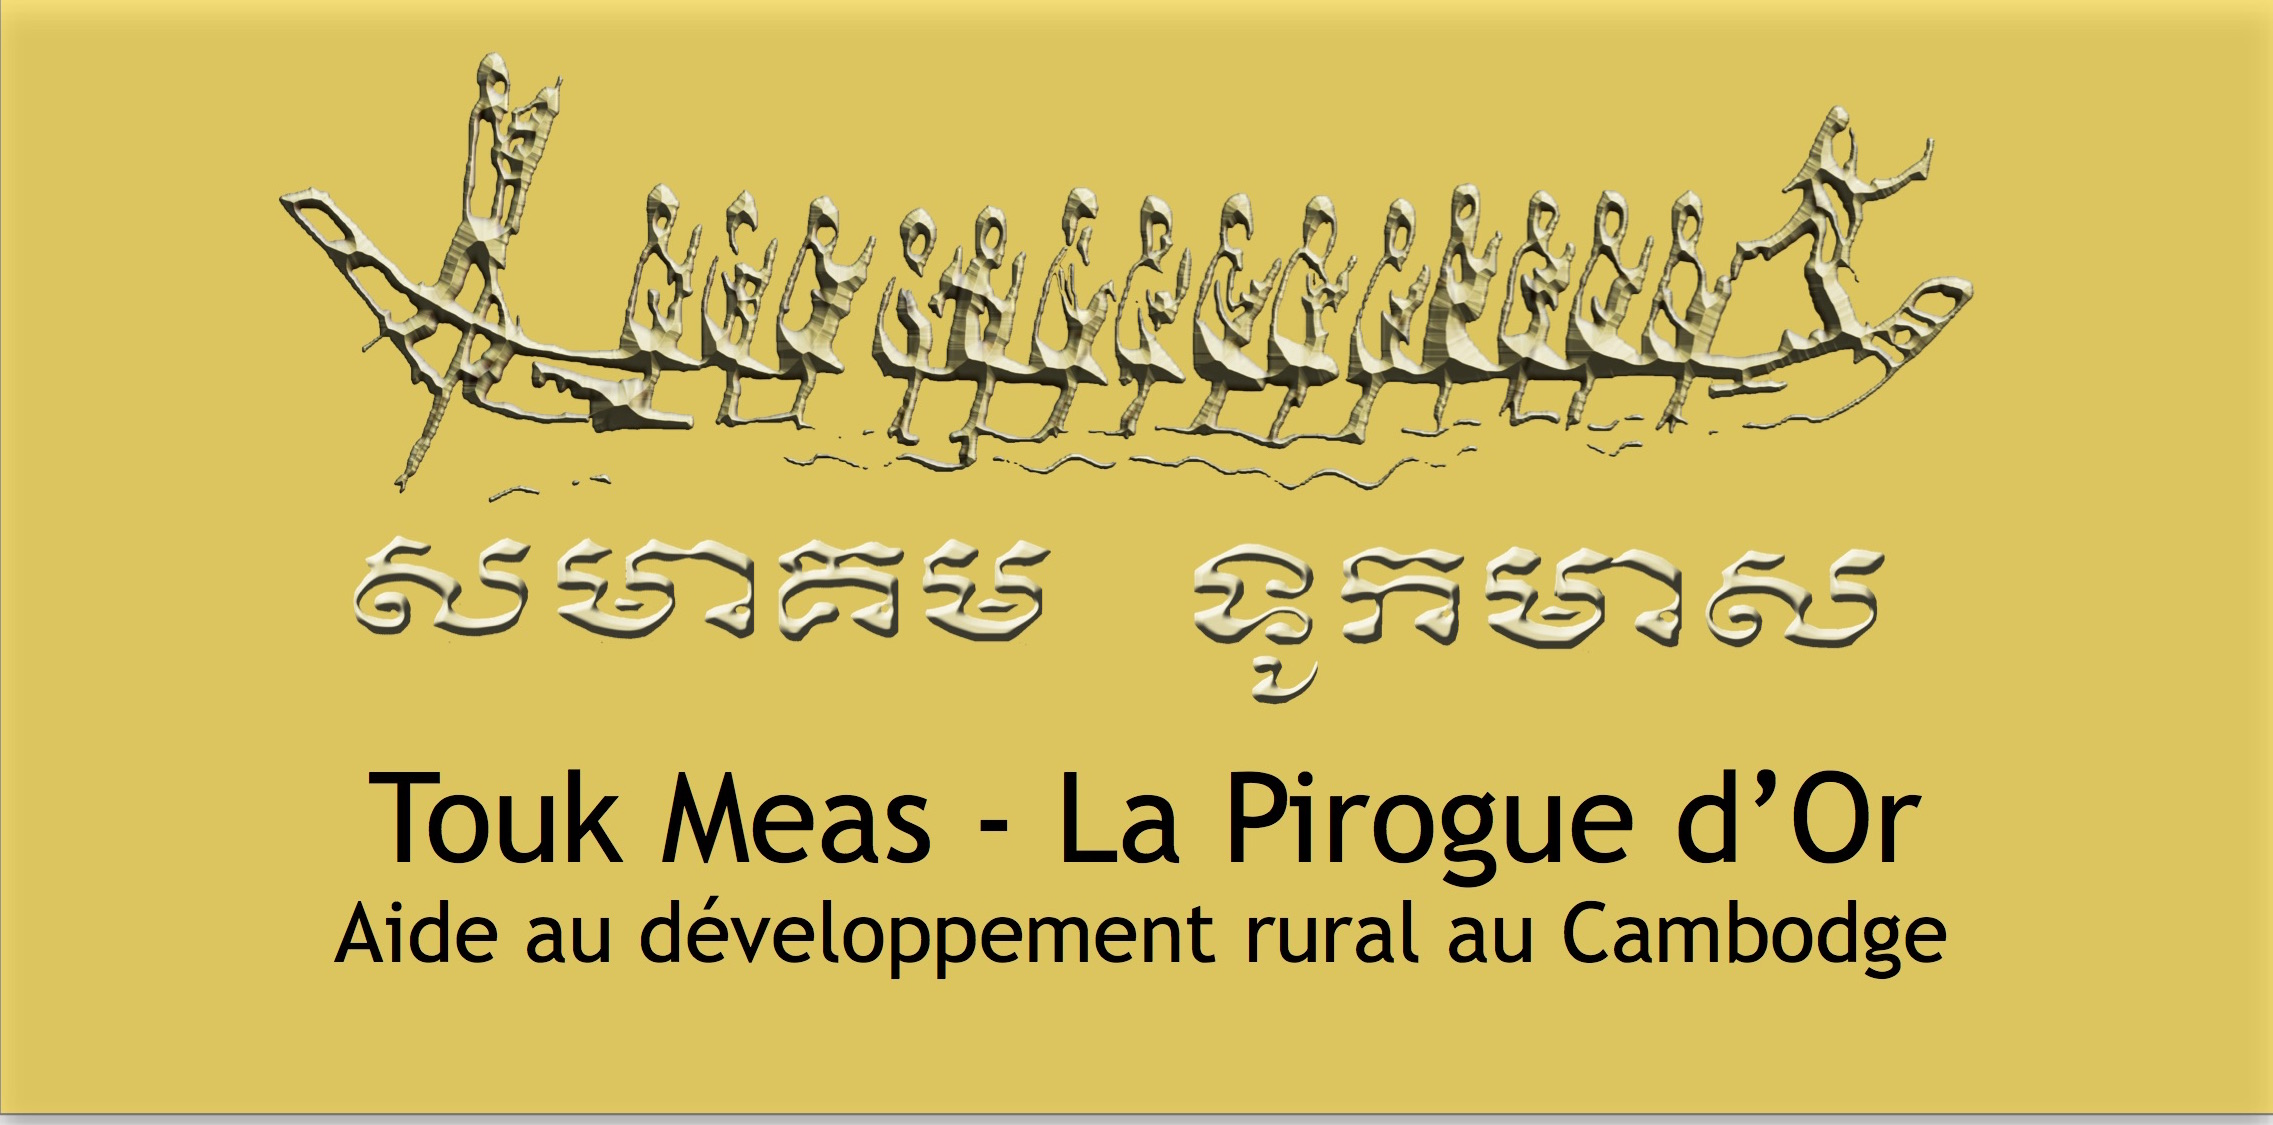 Association - TOUK MEAS -LA PIROGUE D'OR